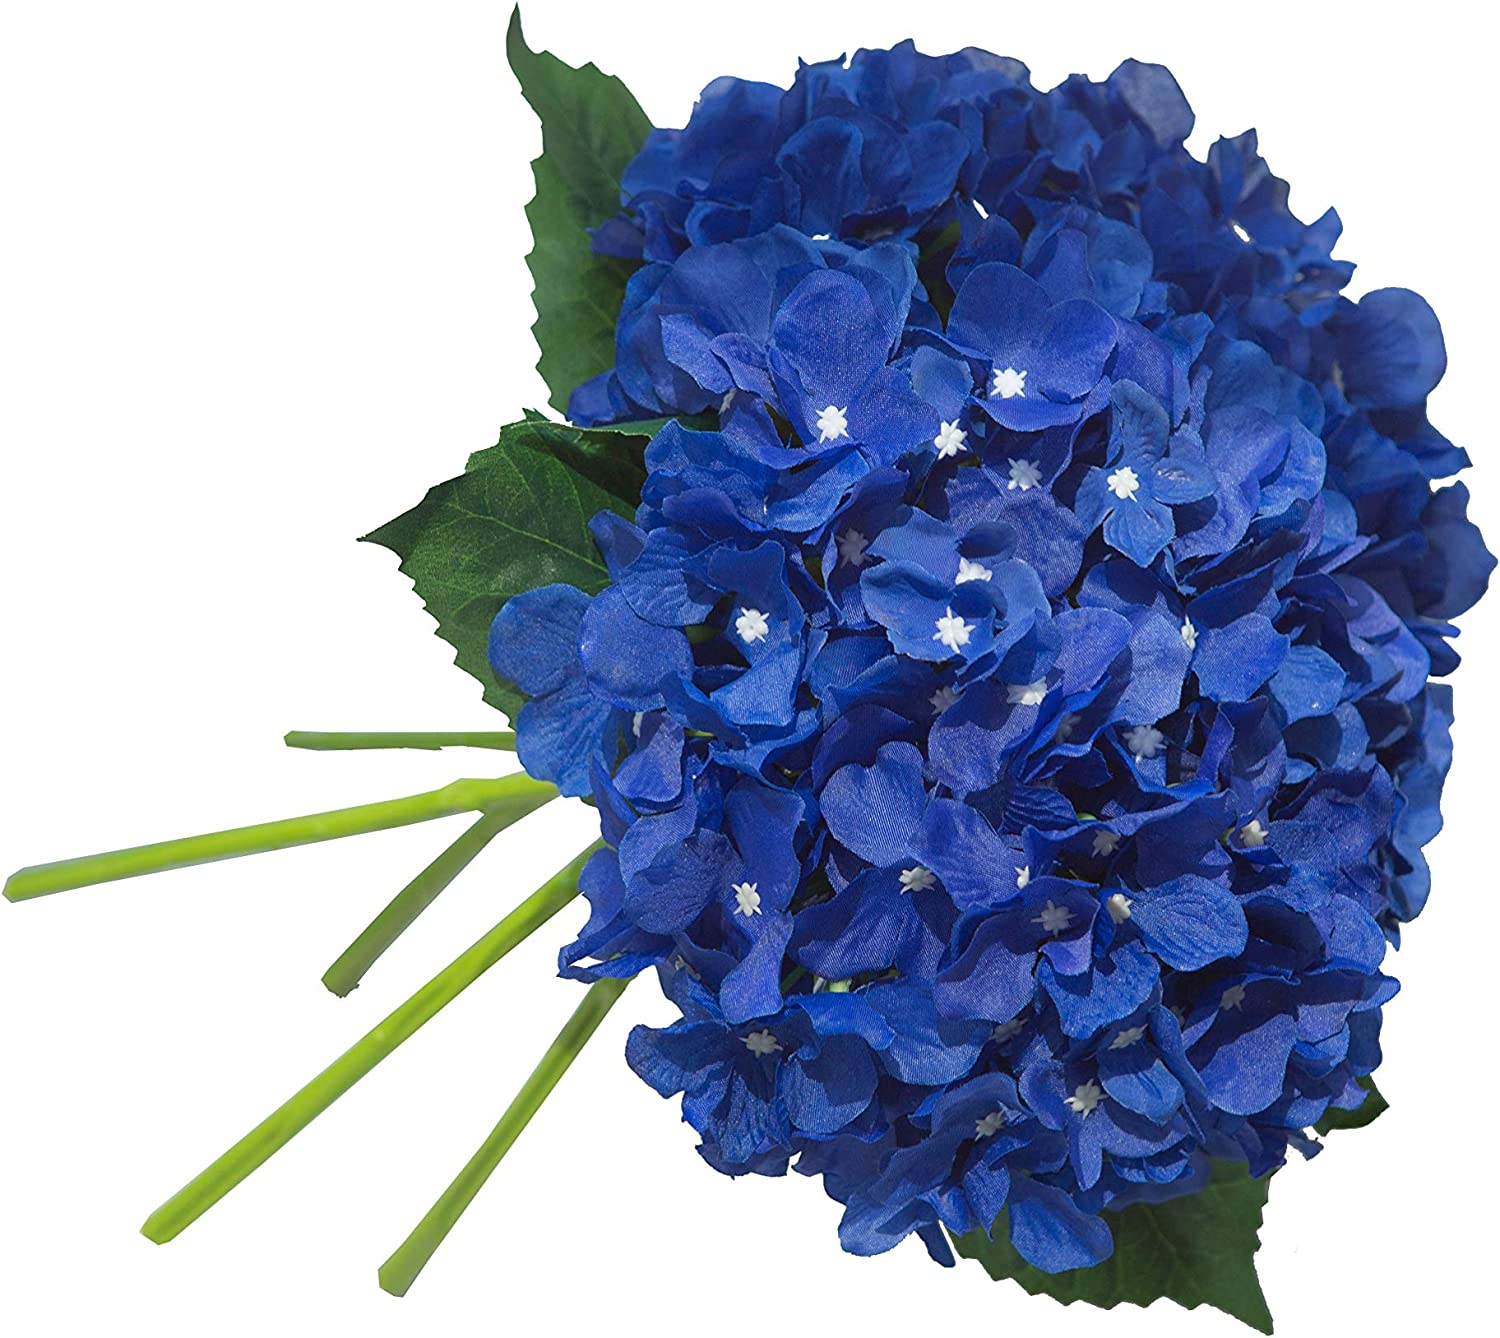 UnikLove 5 Pack Royal Blue Artificial Hydrangea Flowers Stem Fake Silk Hydrangea with Leaves for Wedding Arrangement Home Garden Decor